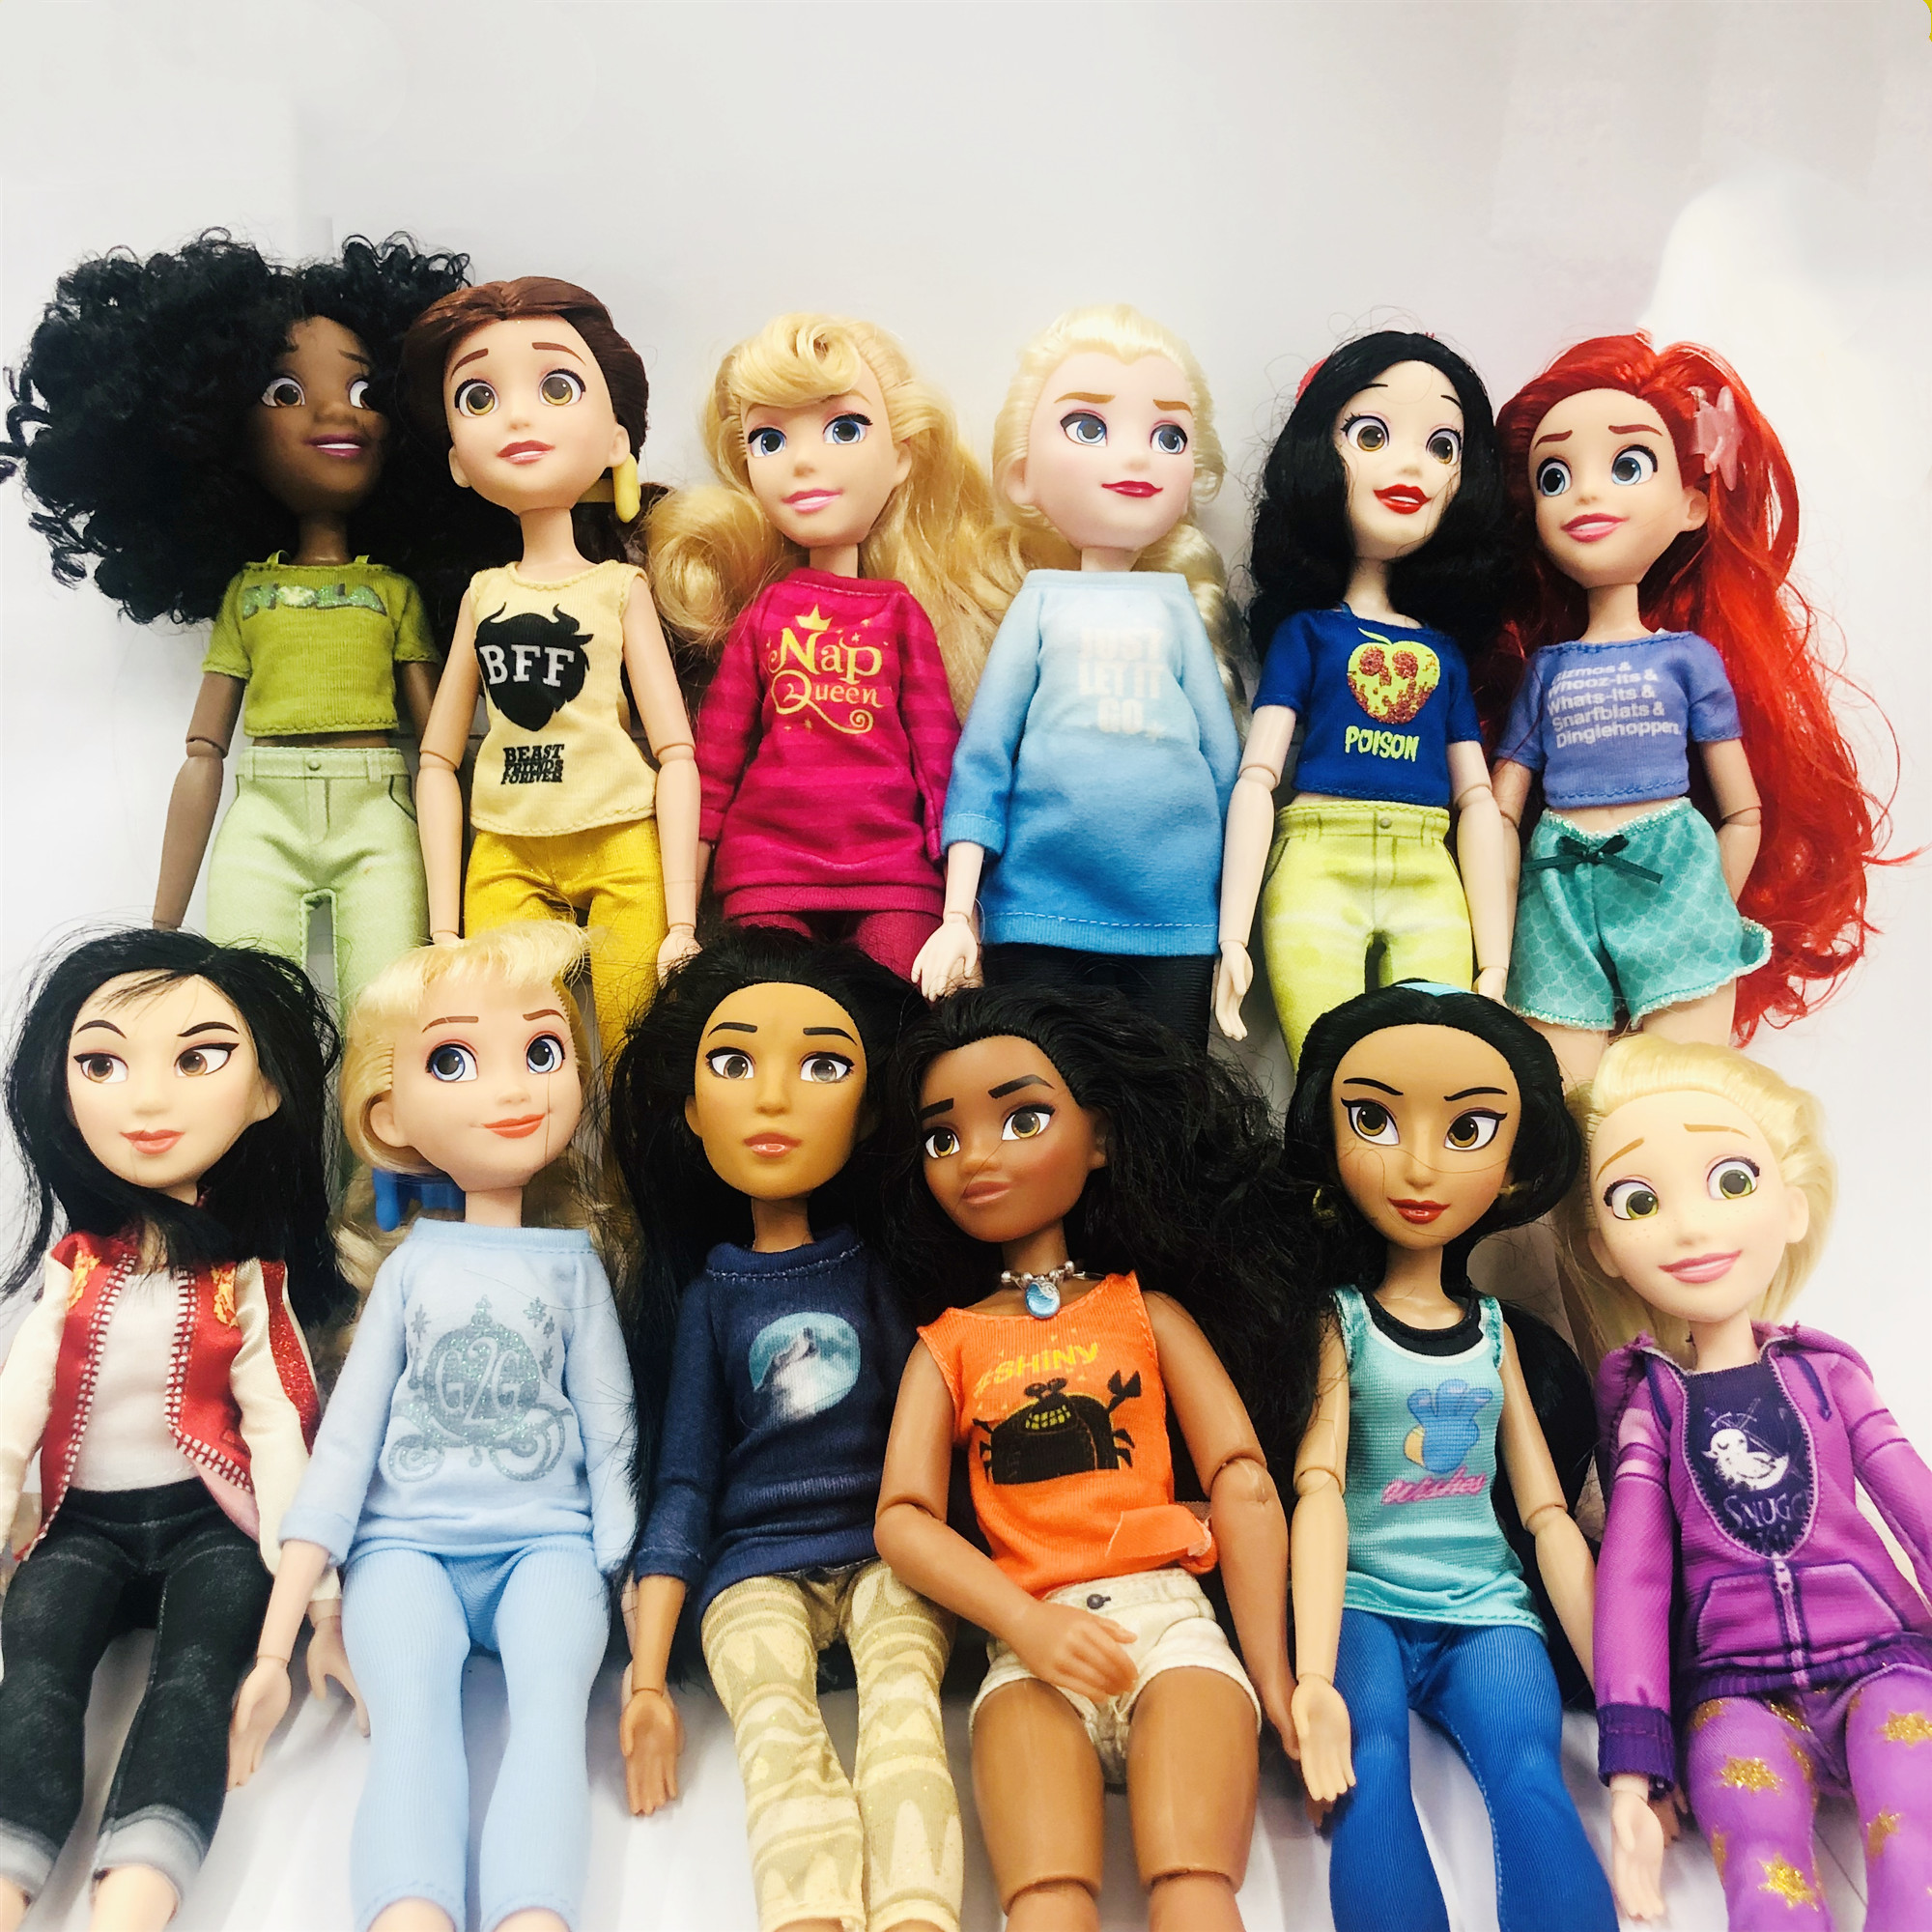 New Rapunzel Princess Jasmine Princess Of Casual Wear Doll Snow White Ariel Merida Cinderella Aurora Belle Dolls For Girls Toy